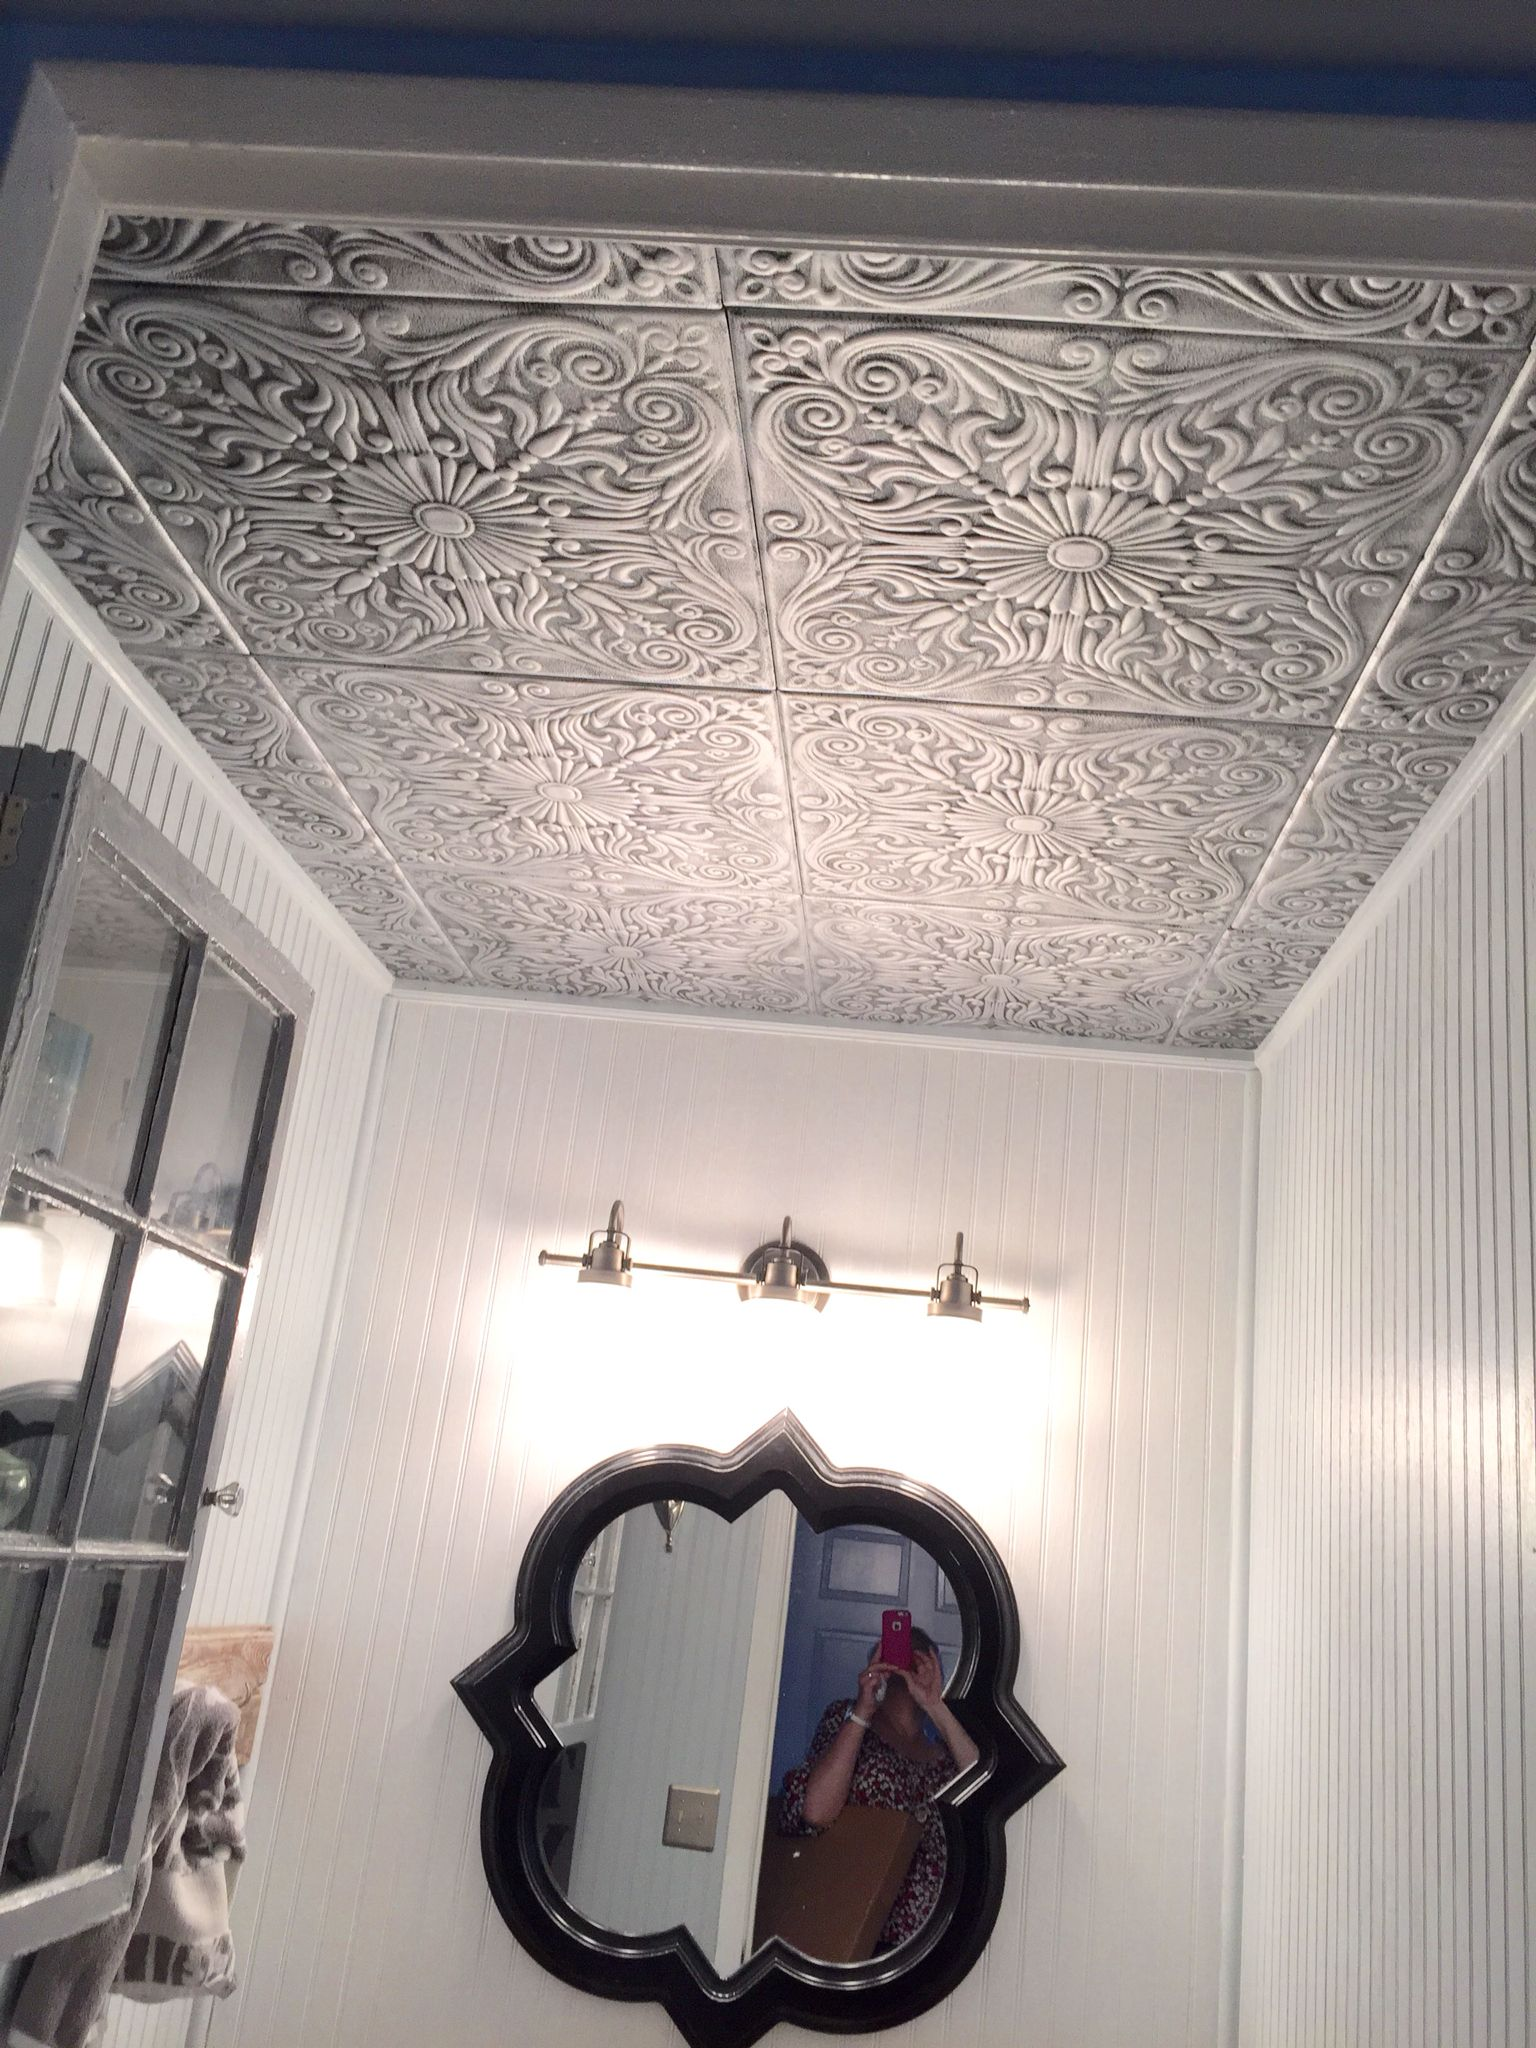 surprising Ceiling Tiles Over Popcorn Ceiling Part - 11: I removed the popcorn first (what a messy project) but these ceiling tiles  can go right over if you ...